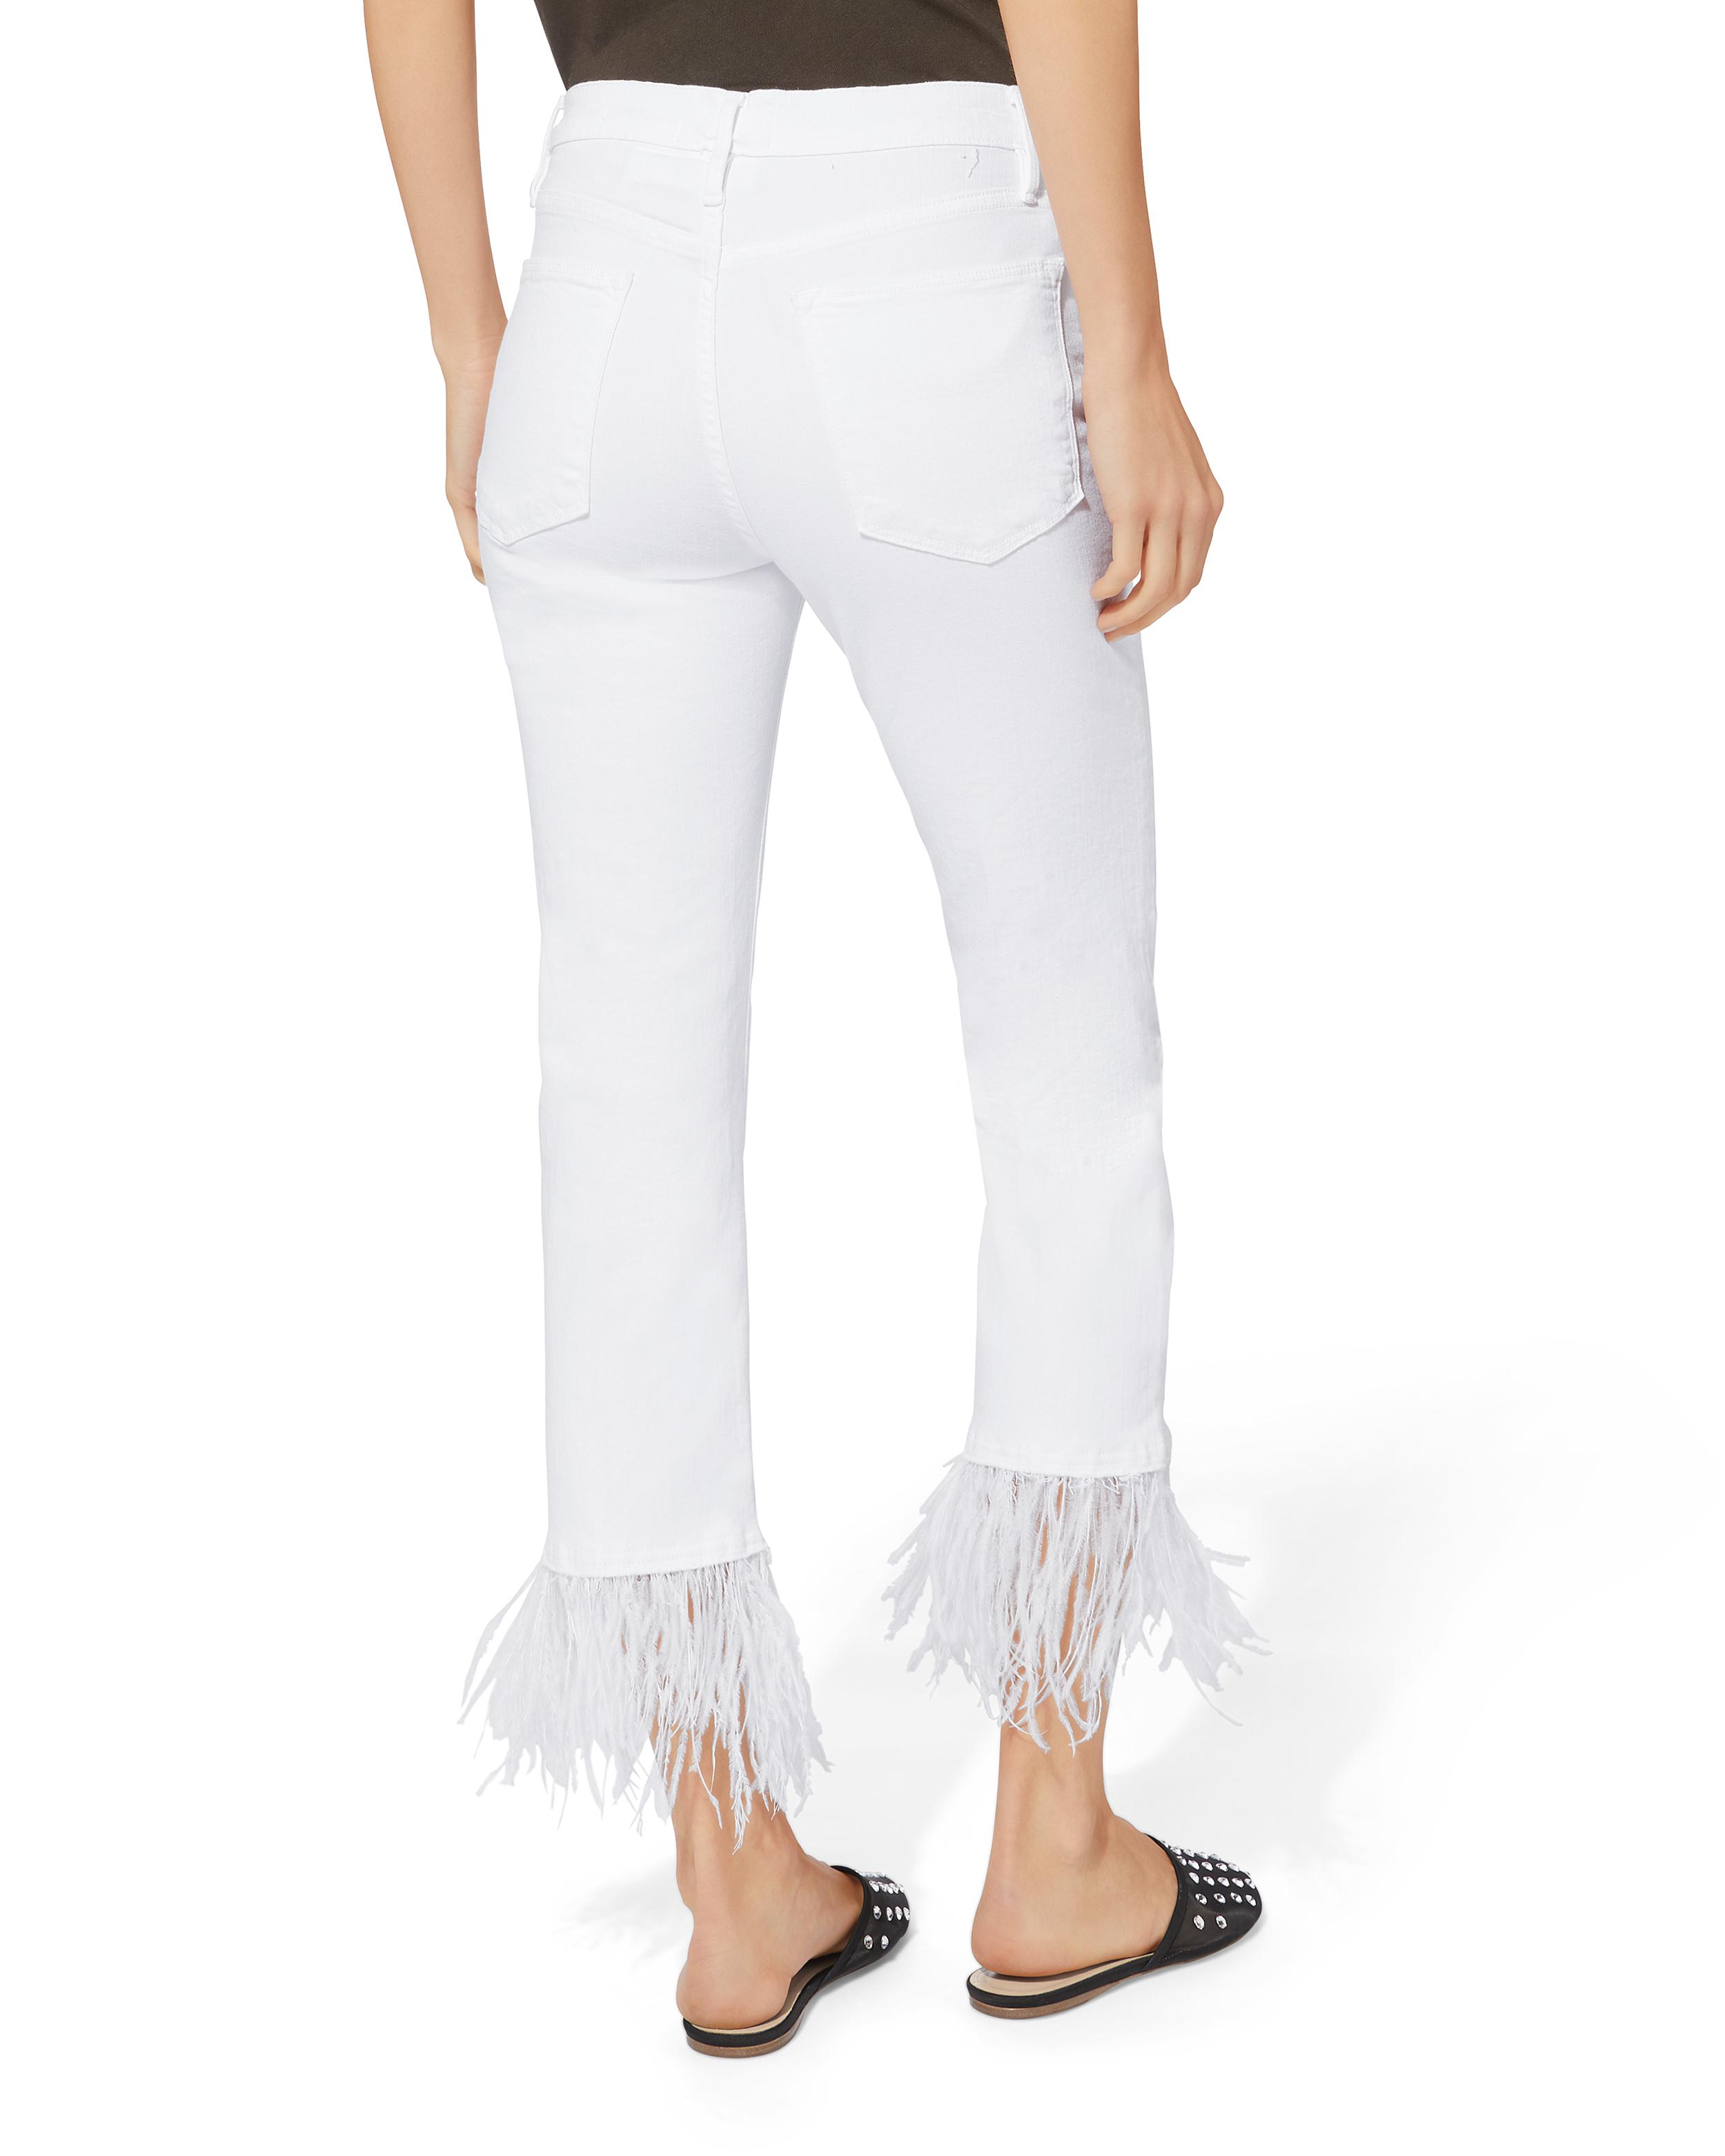 Lyst - Frame Le High Feather Cropped Jeans in White - Save ...